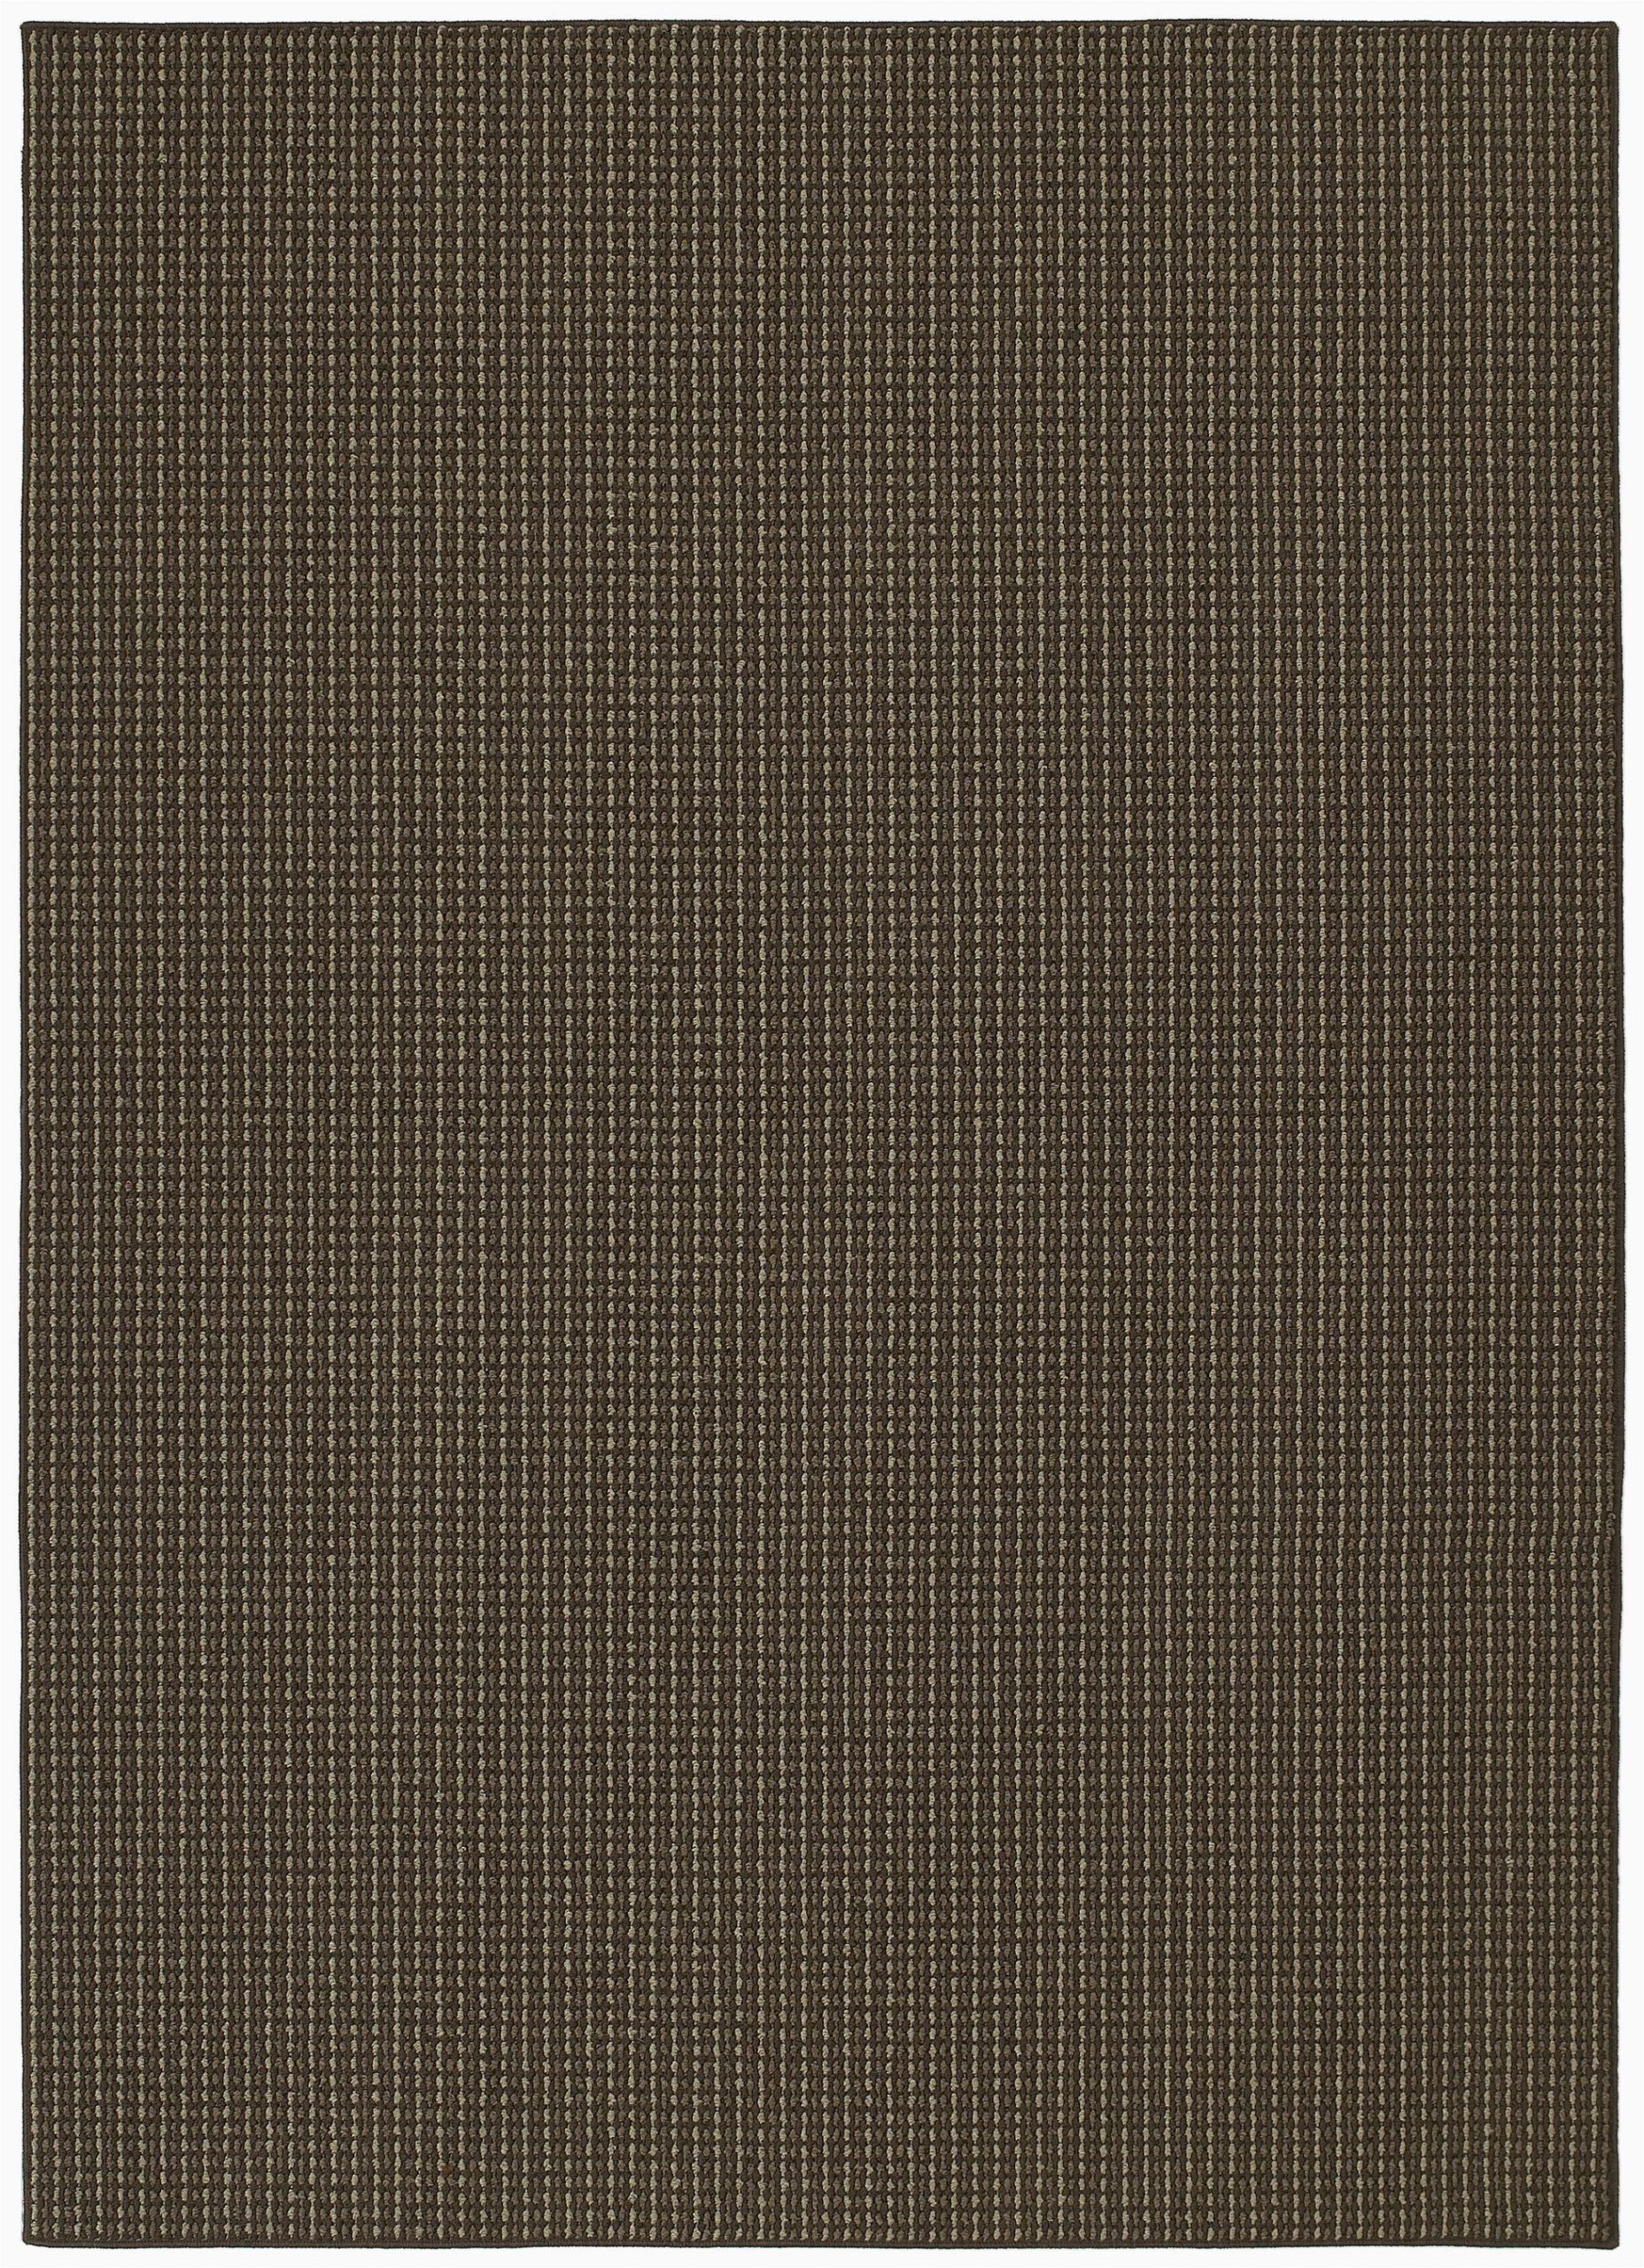 Garland Classic Berber area Rug Berber Colorations Striped Tufted Chocolate area Rug